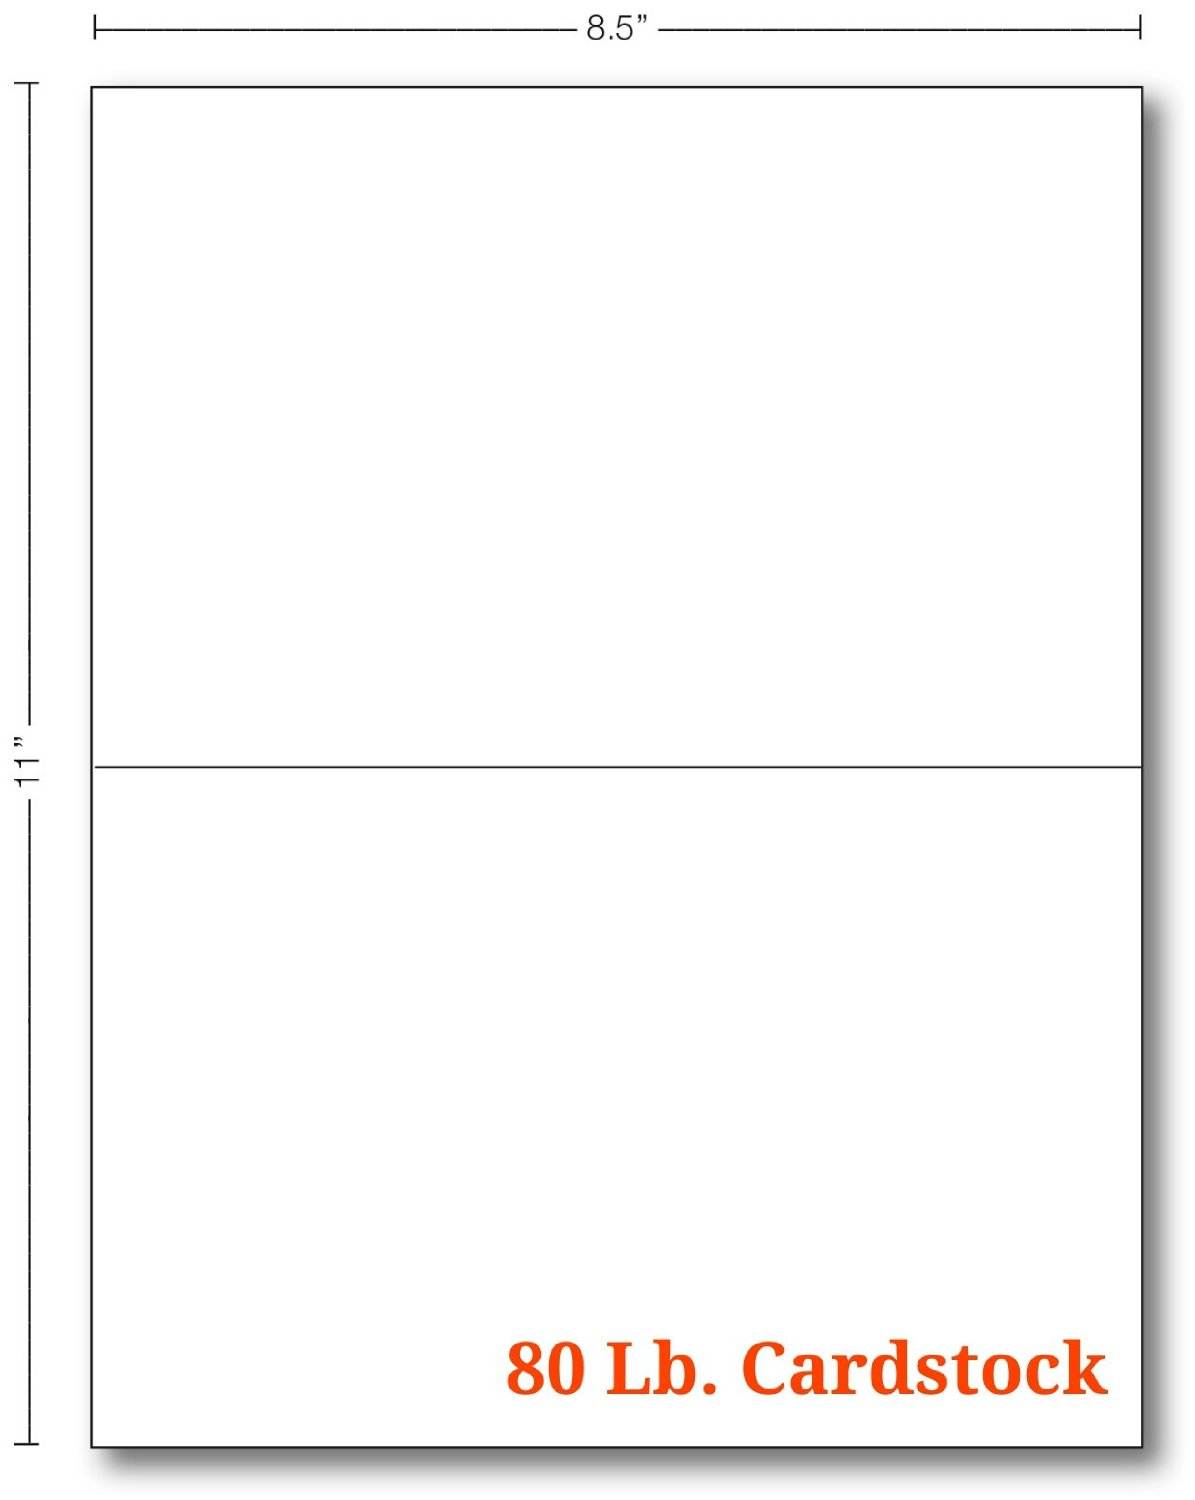 Cheap custom folded greeting cards find custom folded greeting get quotations white half fold greeting cards 100 cards 55 x 85 inches when folded m4hsunfo